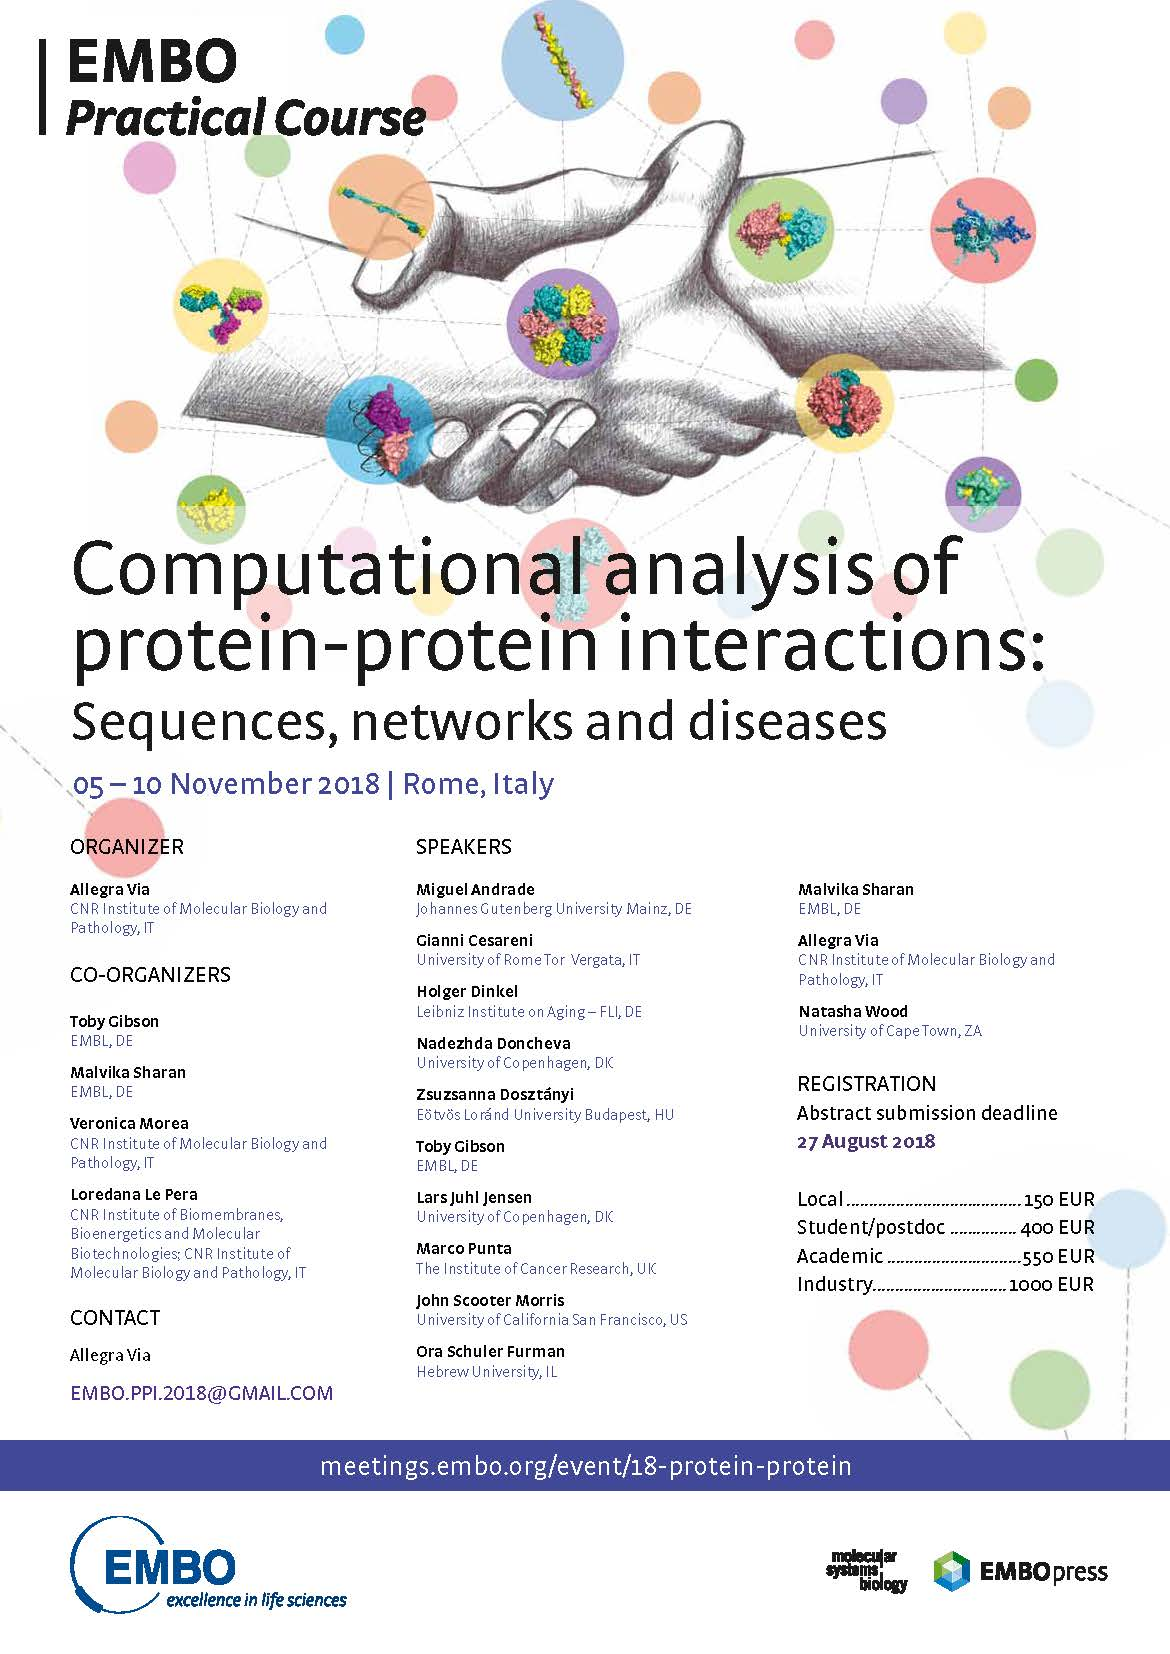 Computational analysis of protein-protein interactions: Sequences, networks and diseases